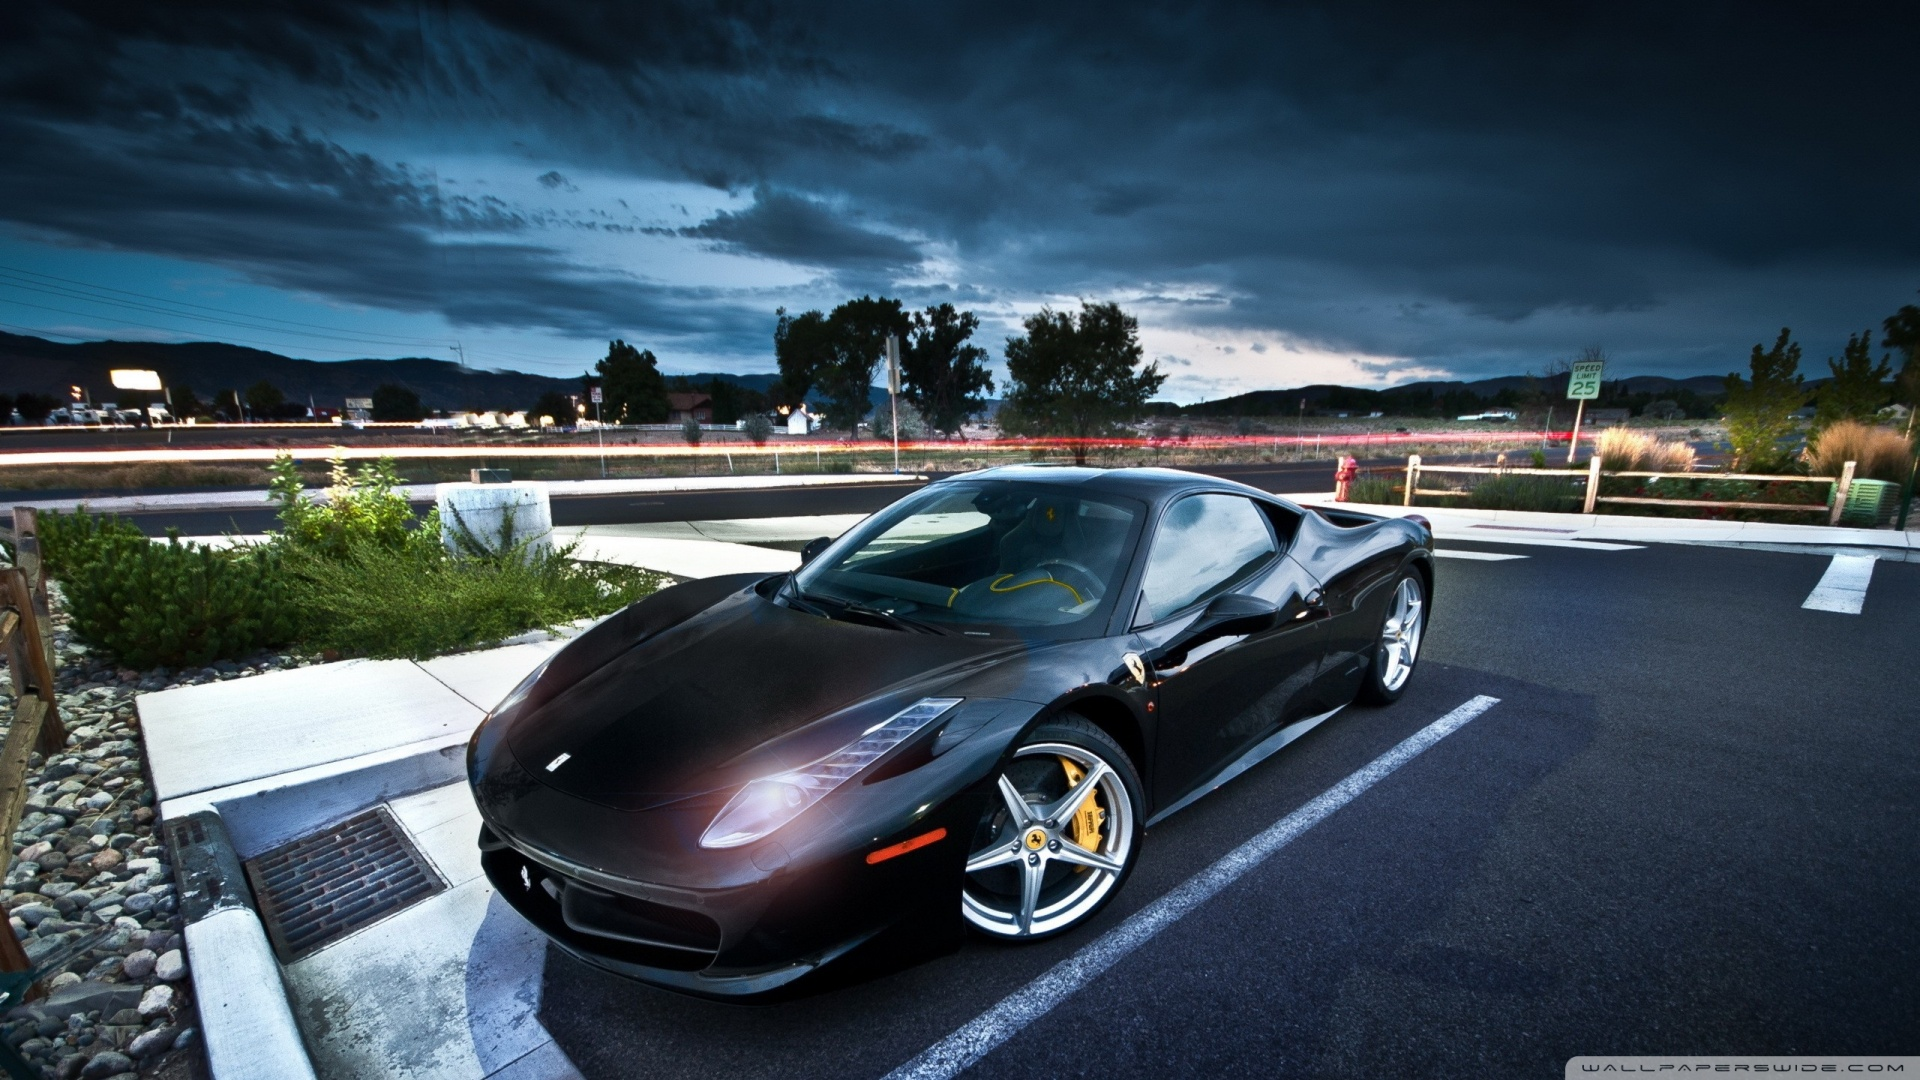 Black ferrari parked lights parking car 2560x1440